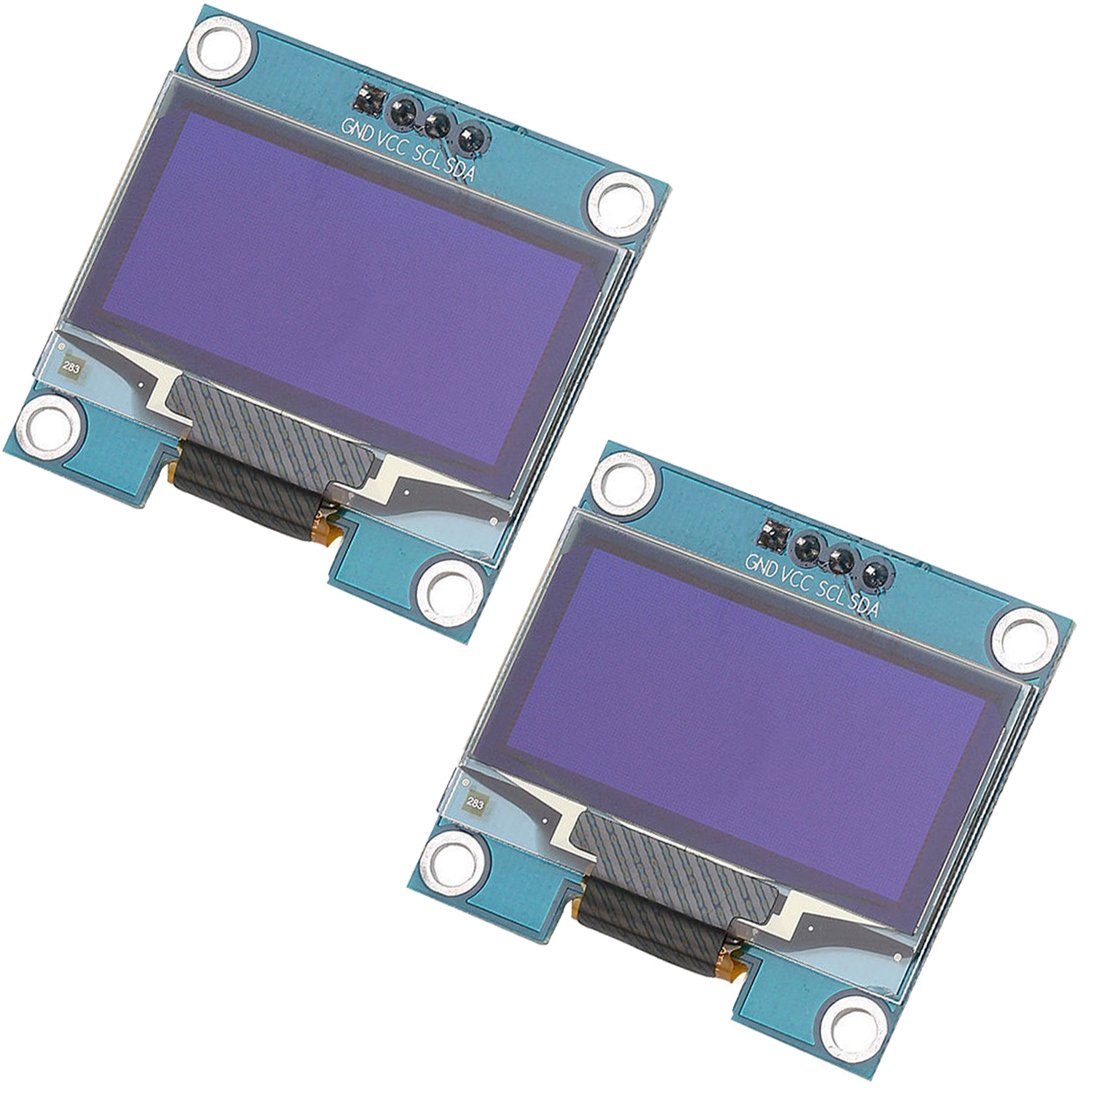 HiLetgo 2pcs 1 3'' IIC I2C Serial 128x64 SSH1106 SSD1306 OLED LCD Display  LCD Module for Arduino AVR PIC STM32